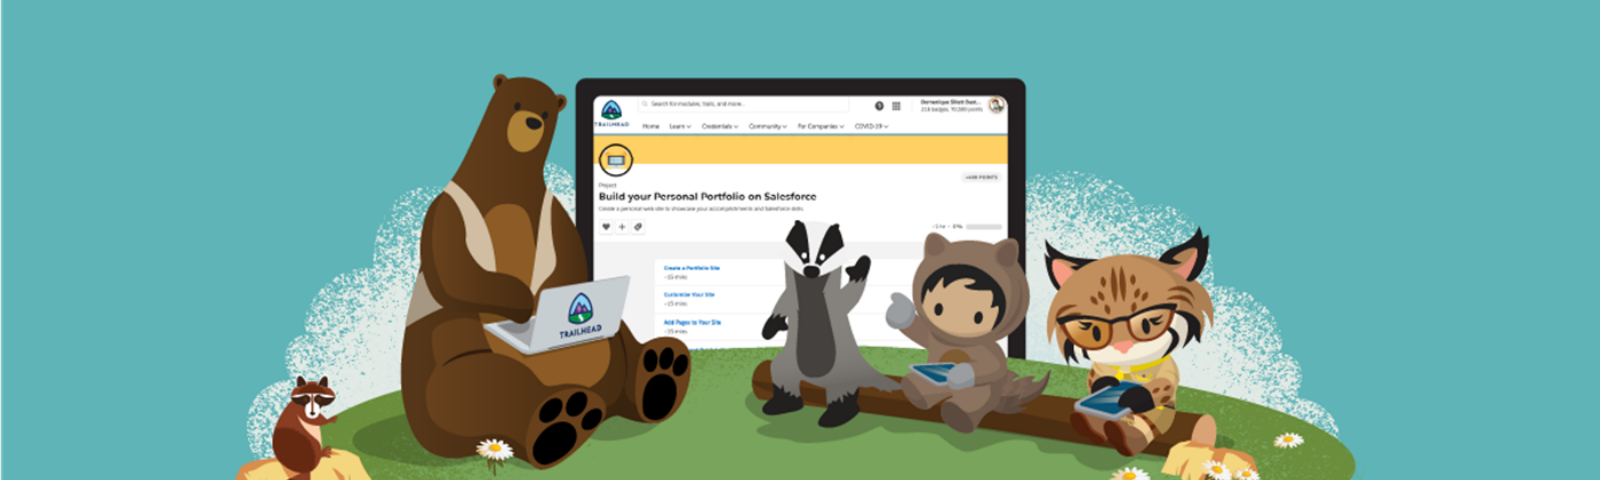 Trailhead characters Codey, Earnie, Astro, and Appy sitting on a log in front of a screen showing the Portfolio project.